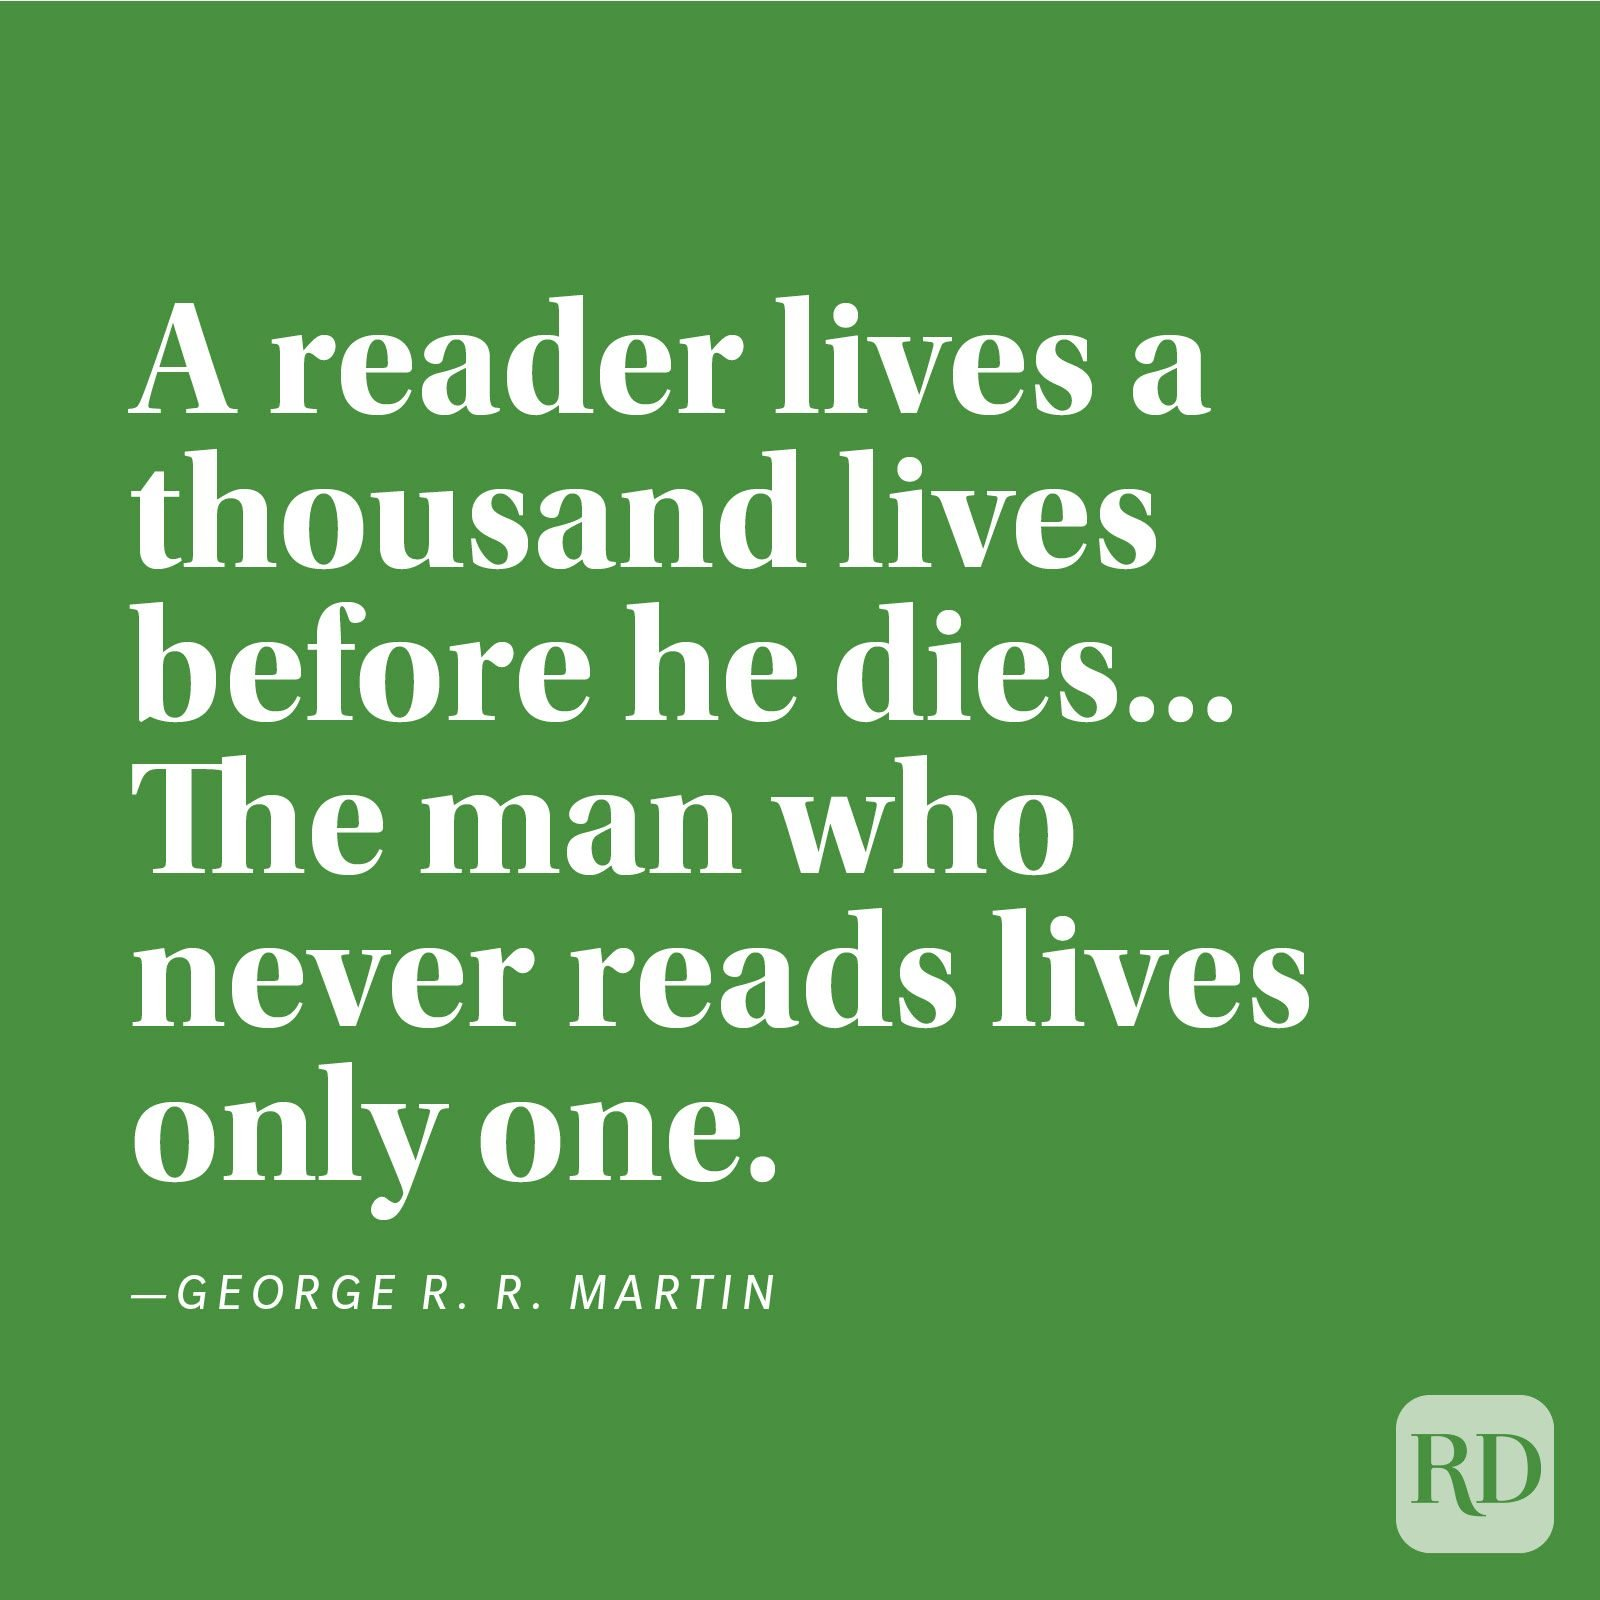 """A reader lives a thousand lives before he dies... The man who never reads lives only one."" —George R. R. Martin."